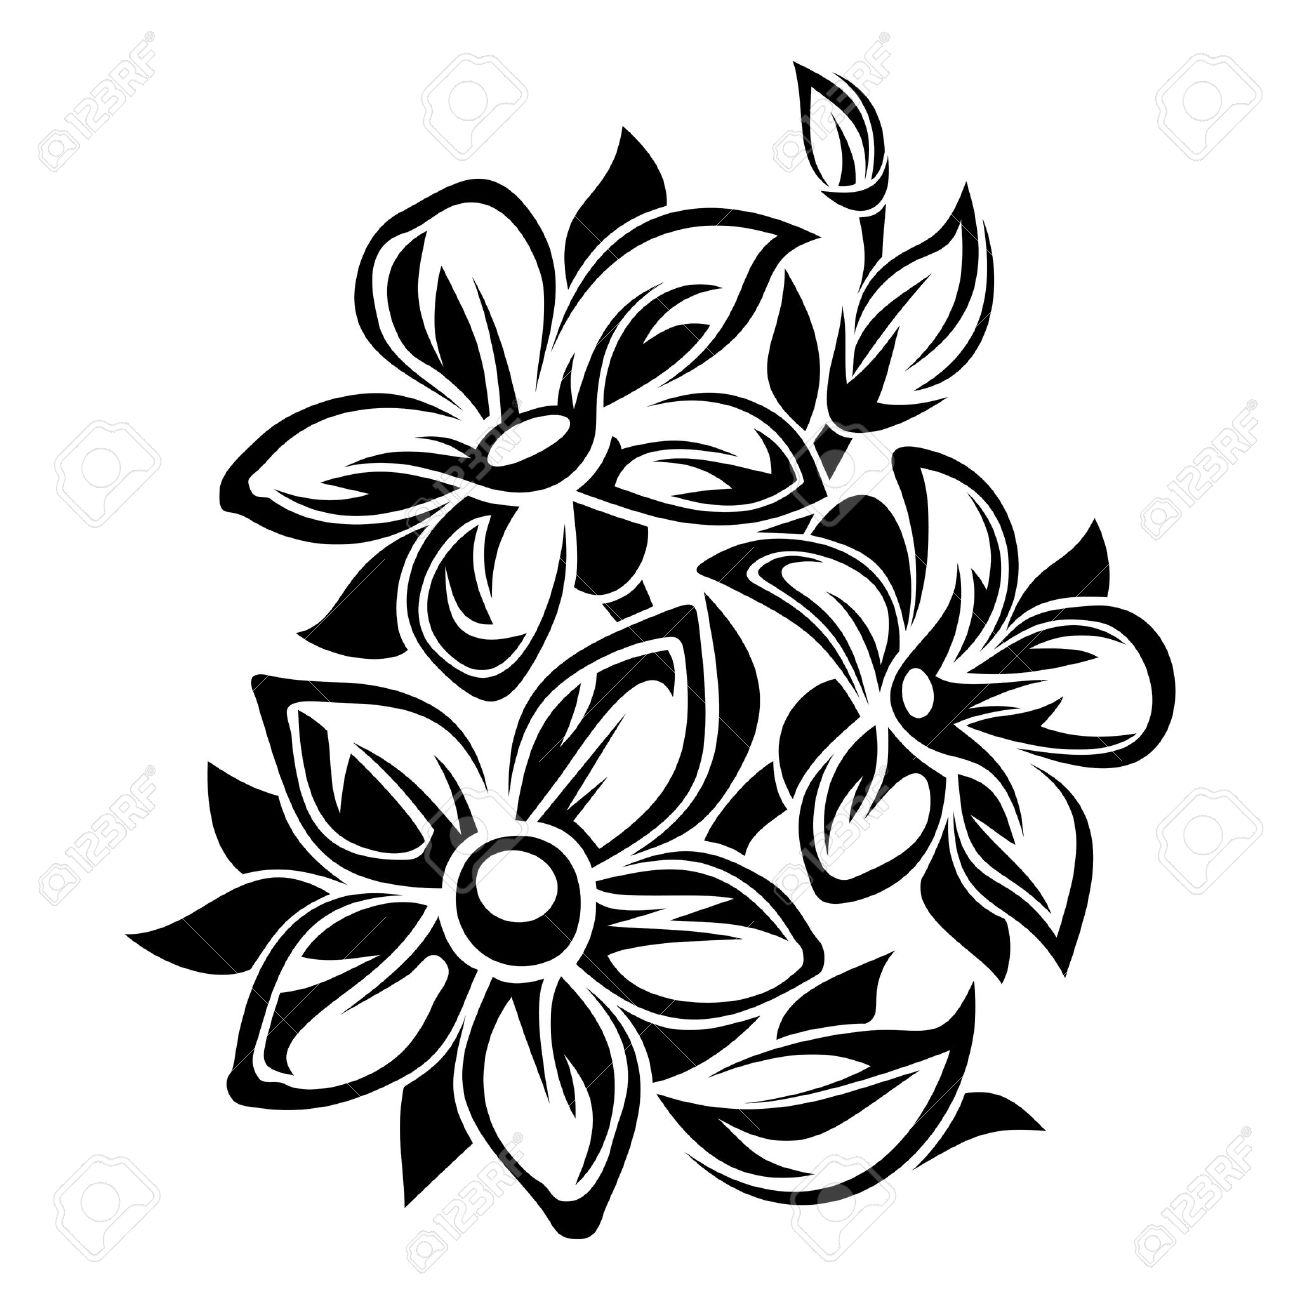 Flowers black and white ornament. Vector illustration..